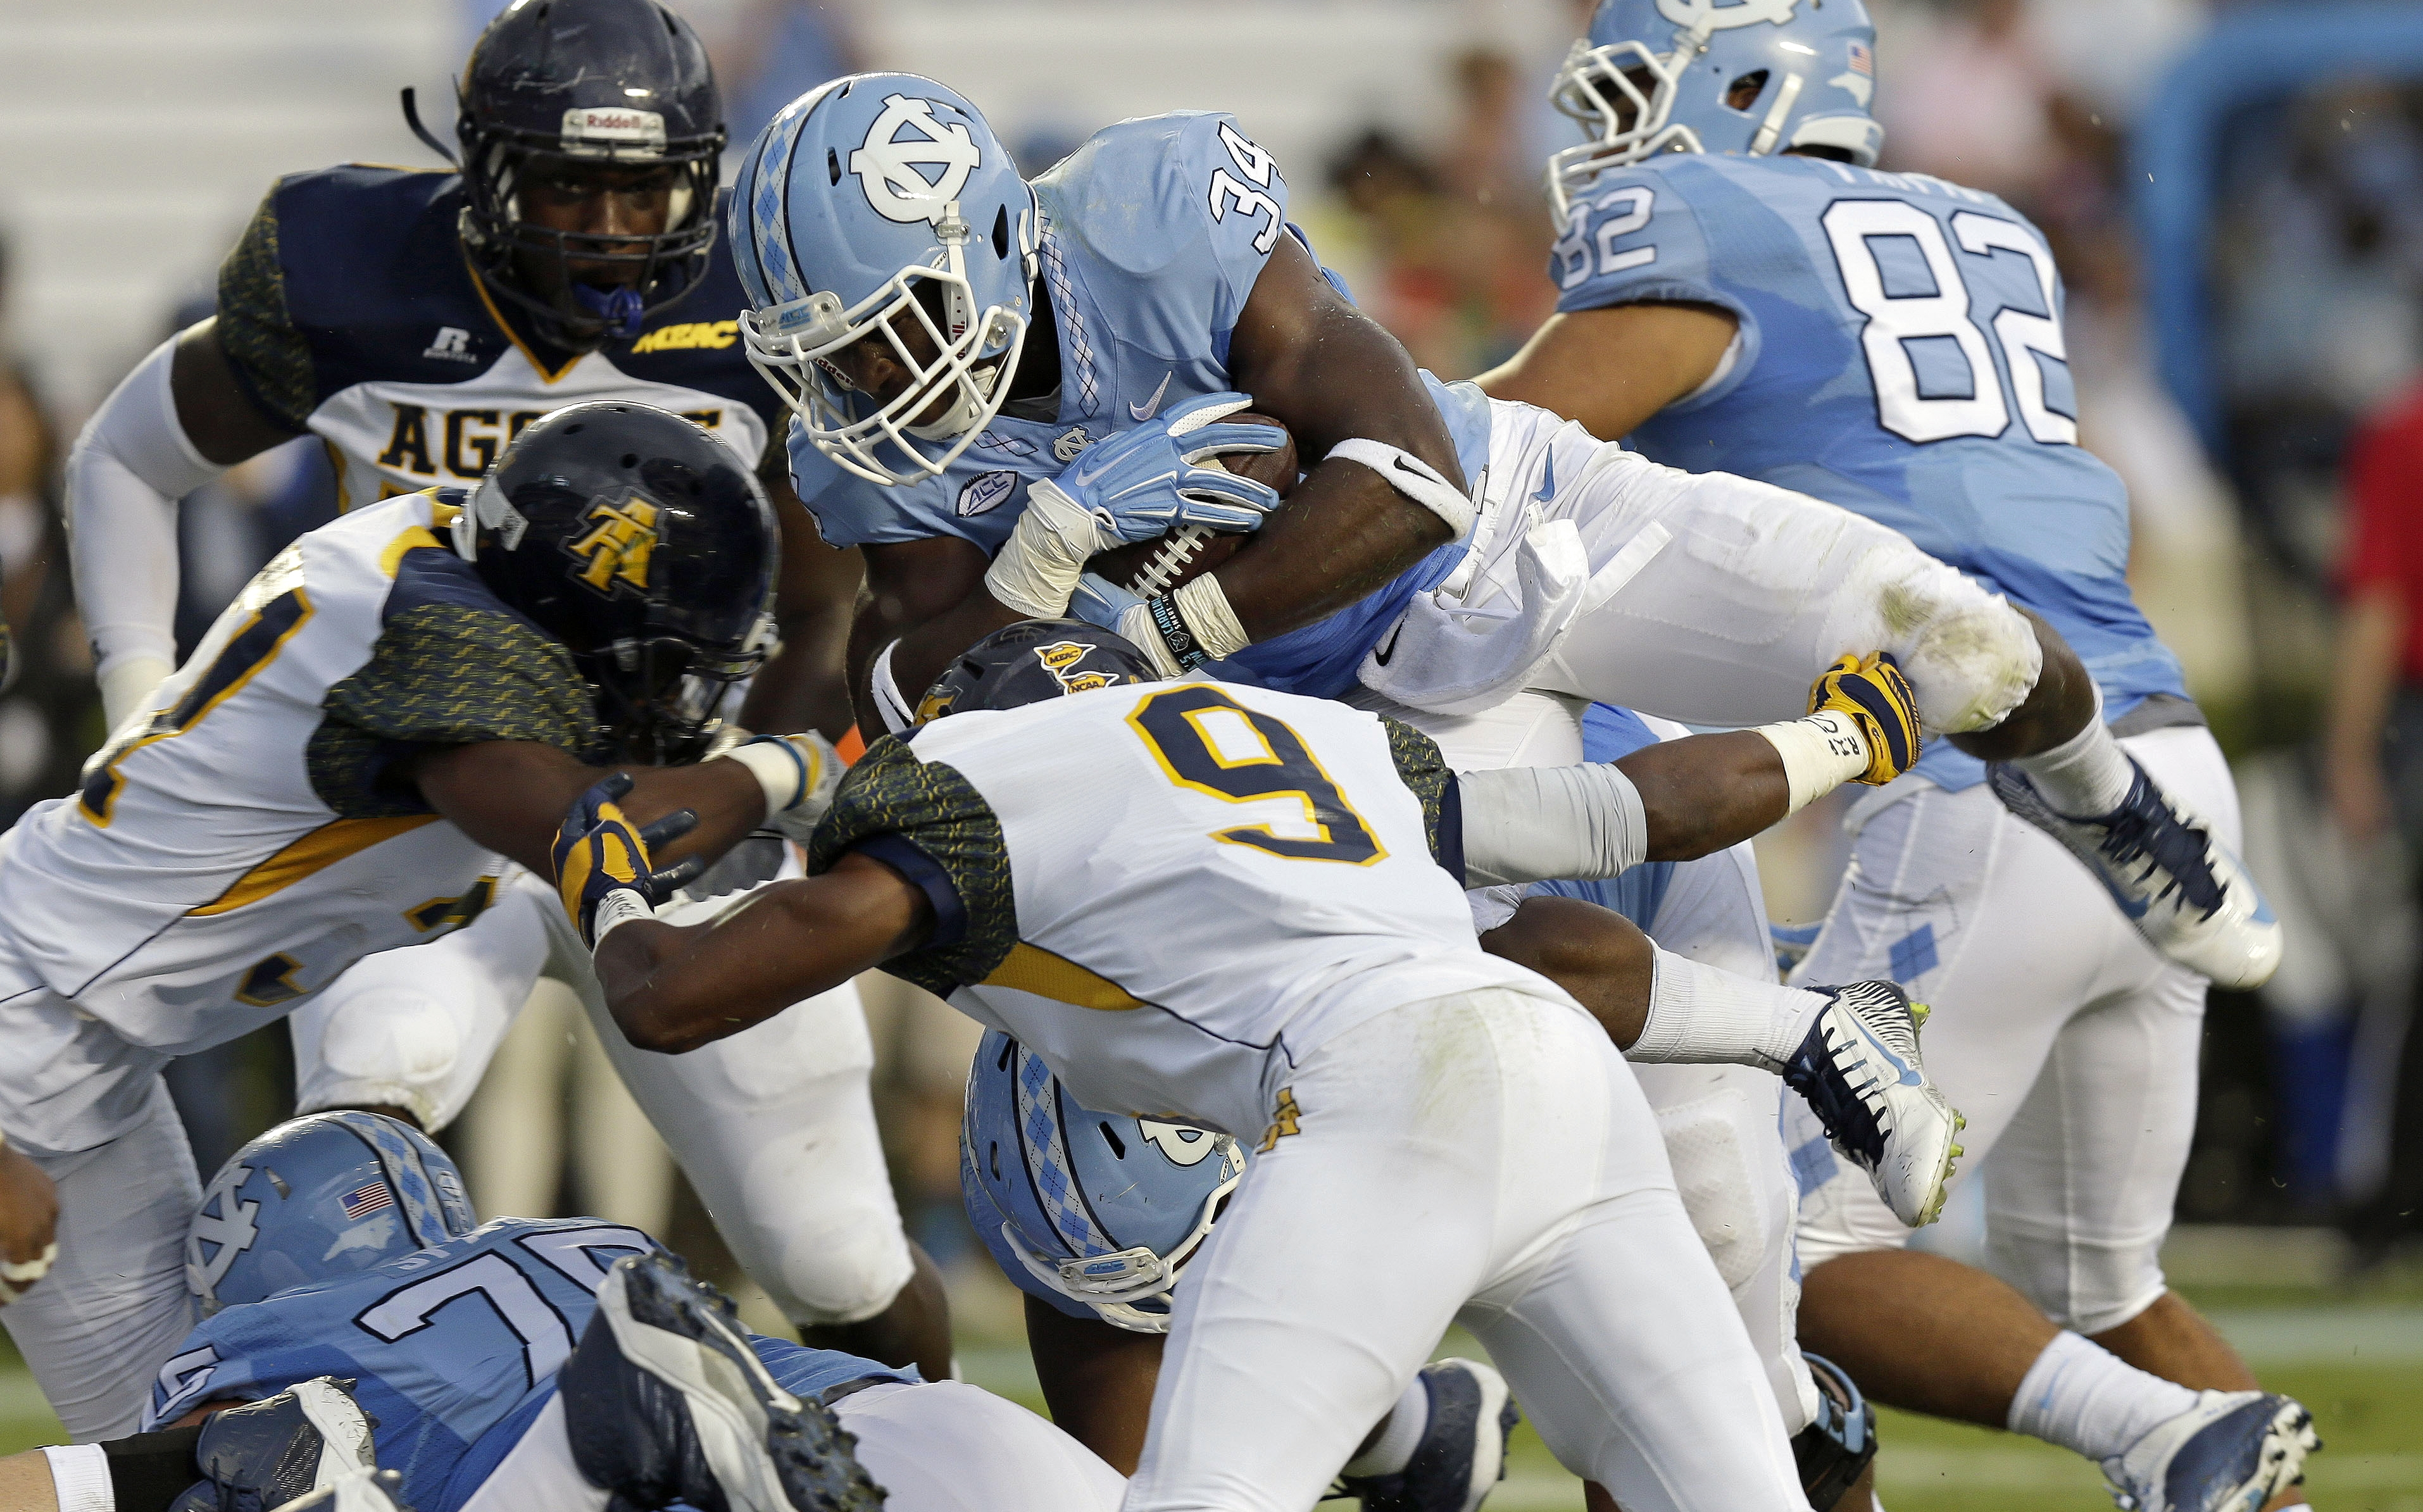 North Carolina's Elijah Hood (34) dives over North Carolina A&T's Zerius Lockhart (9) during the first half of an NCAA college football game in Chapel Hill, N.C., Saturday, Sept. 12, 2015. Hood scored a touchdown on the play. (AP Photo/Gerry Broome)